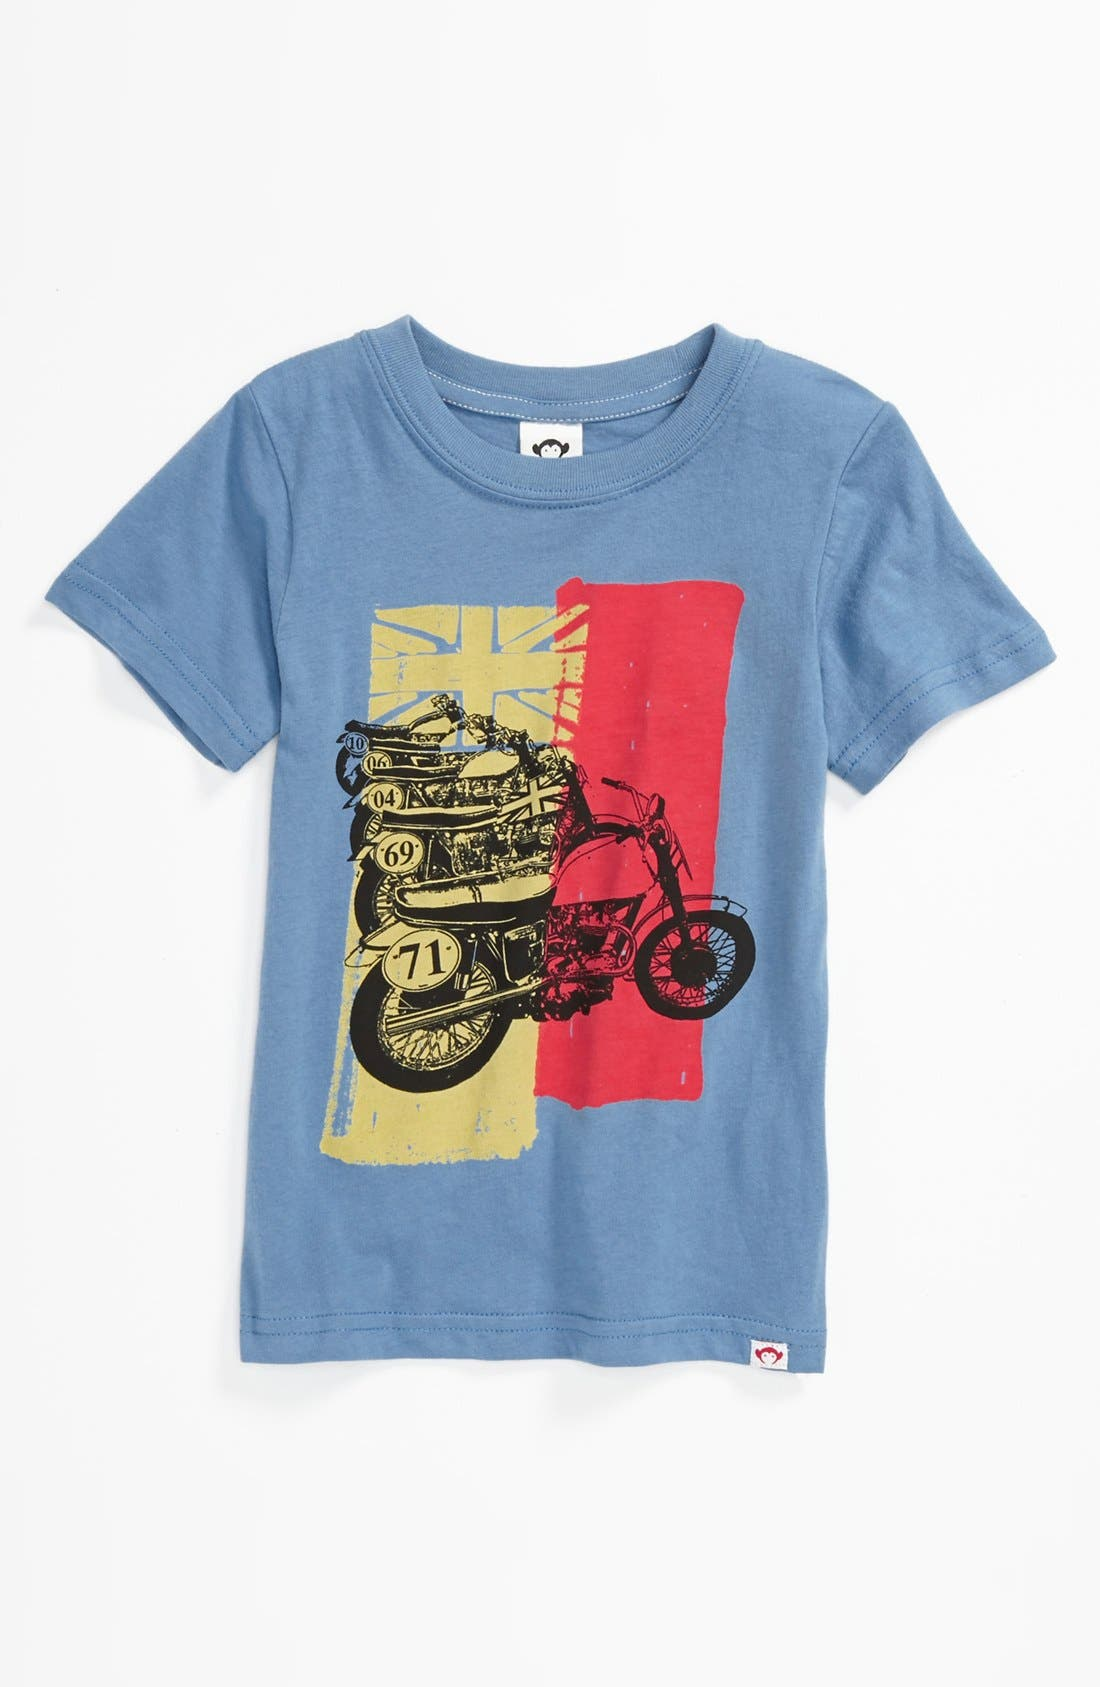 Alternate Image 1 Selected - Appaman 'Bikes' T-Shirt (Toddler)